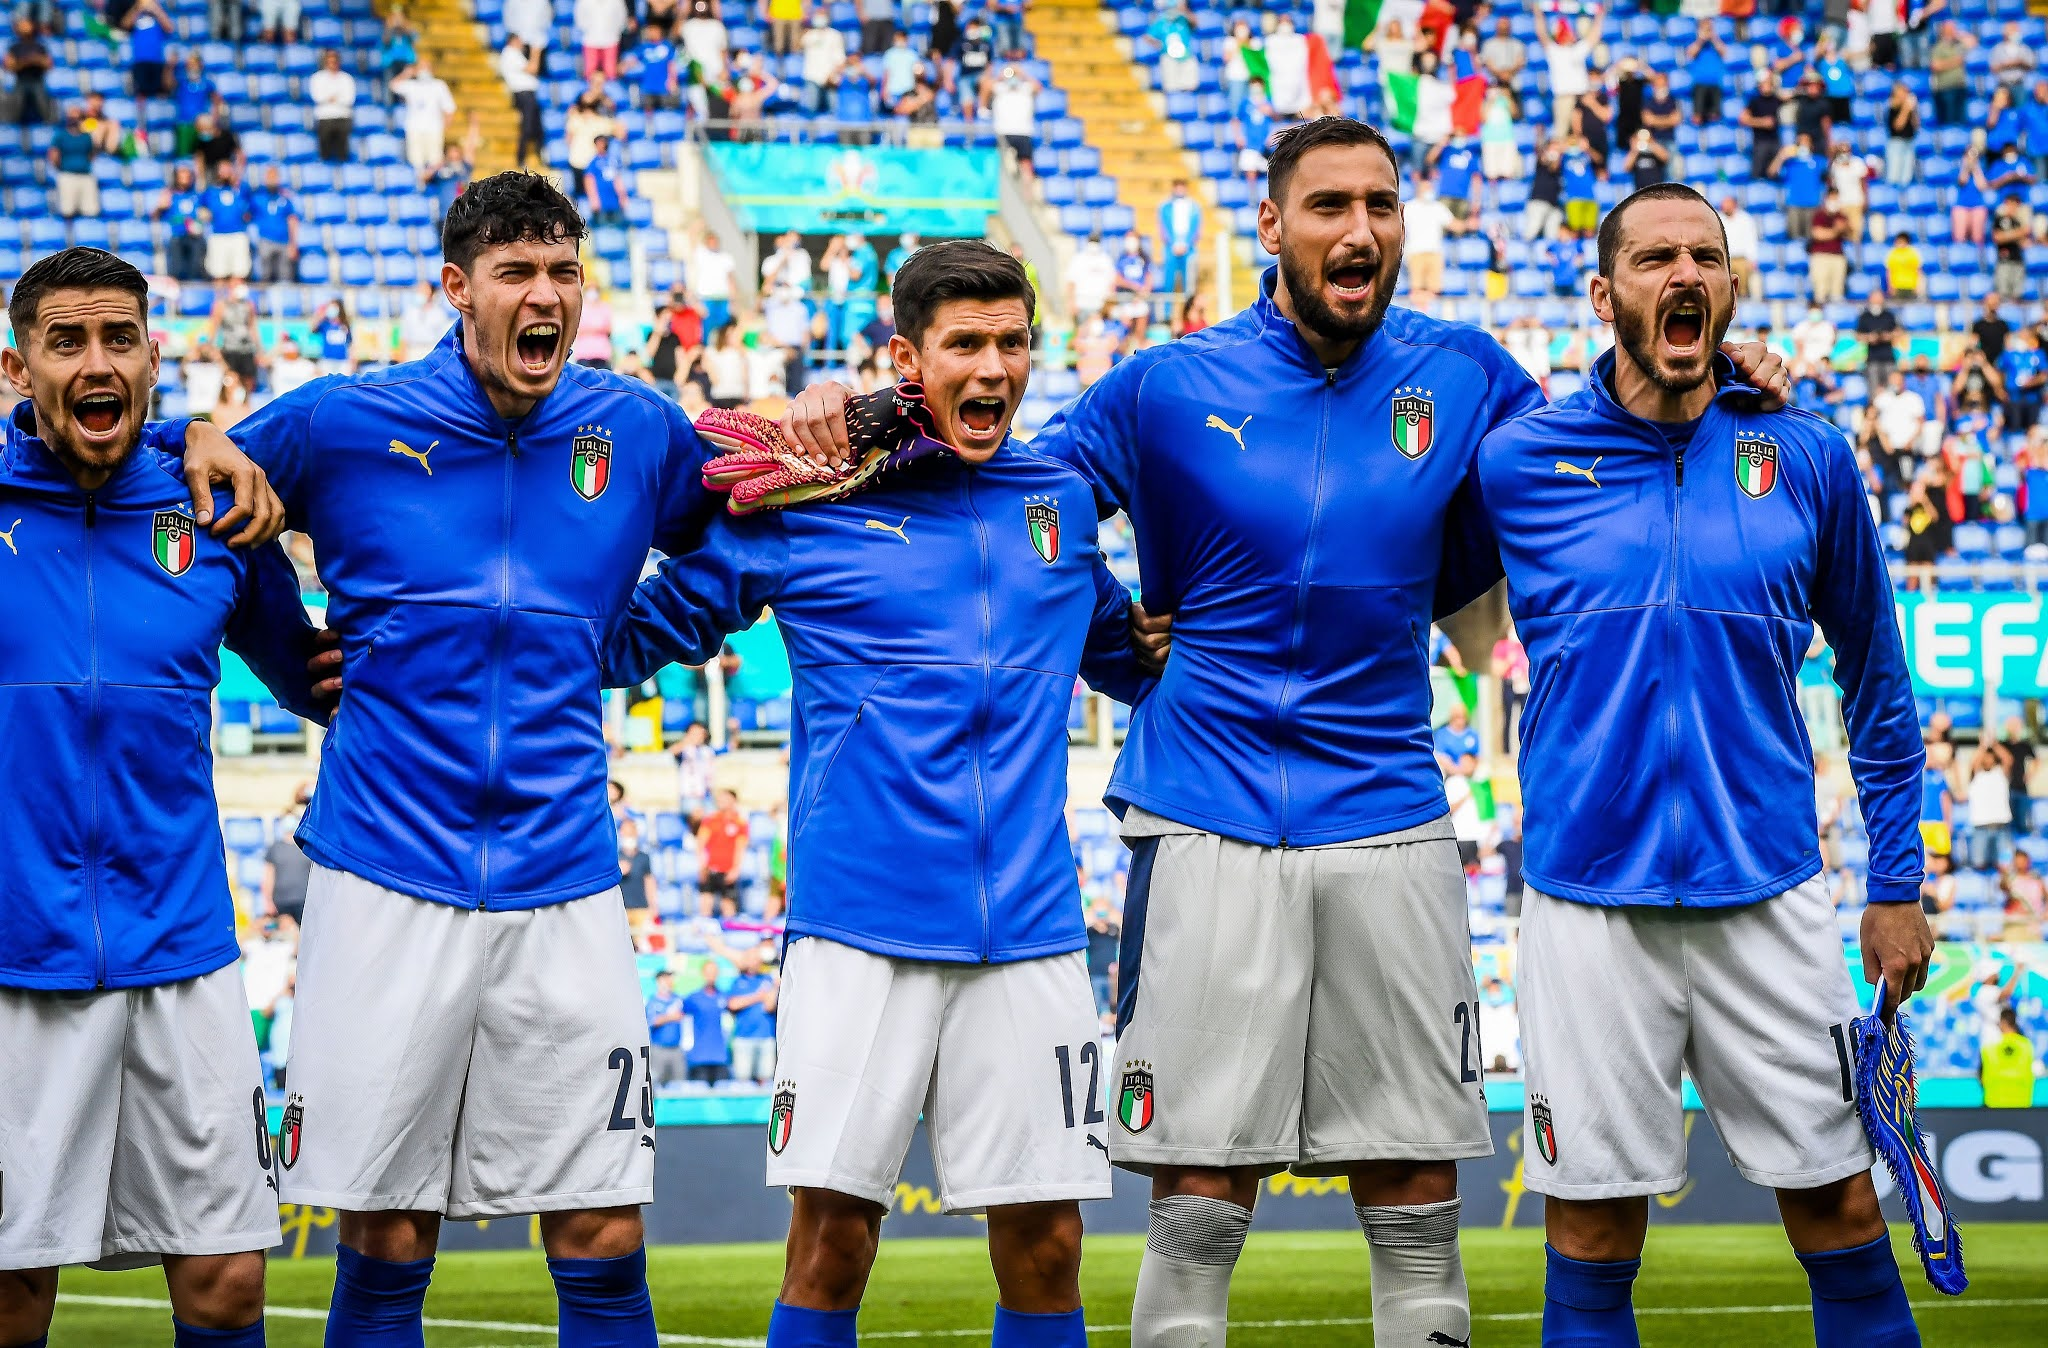 Italy are hot favourites to beat Austria to the quarter-finals